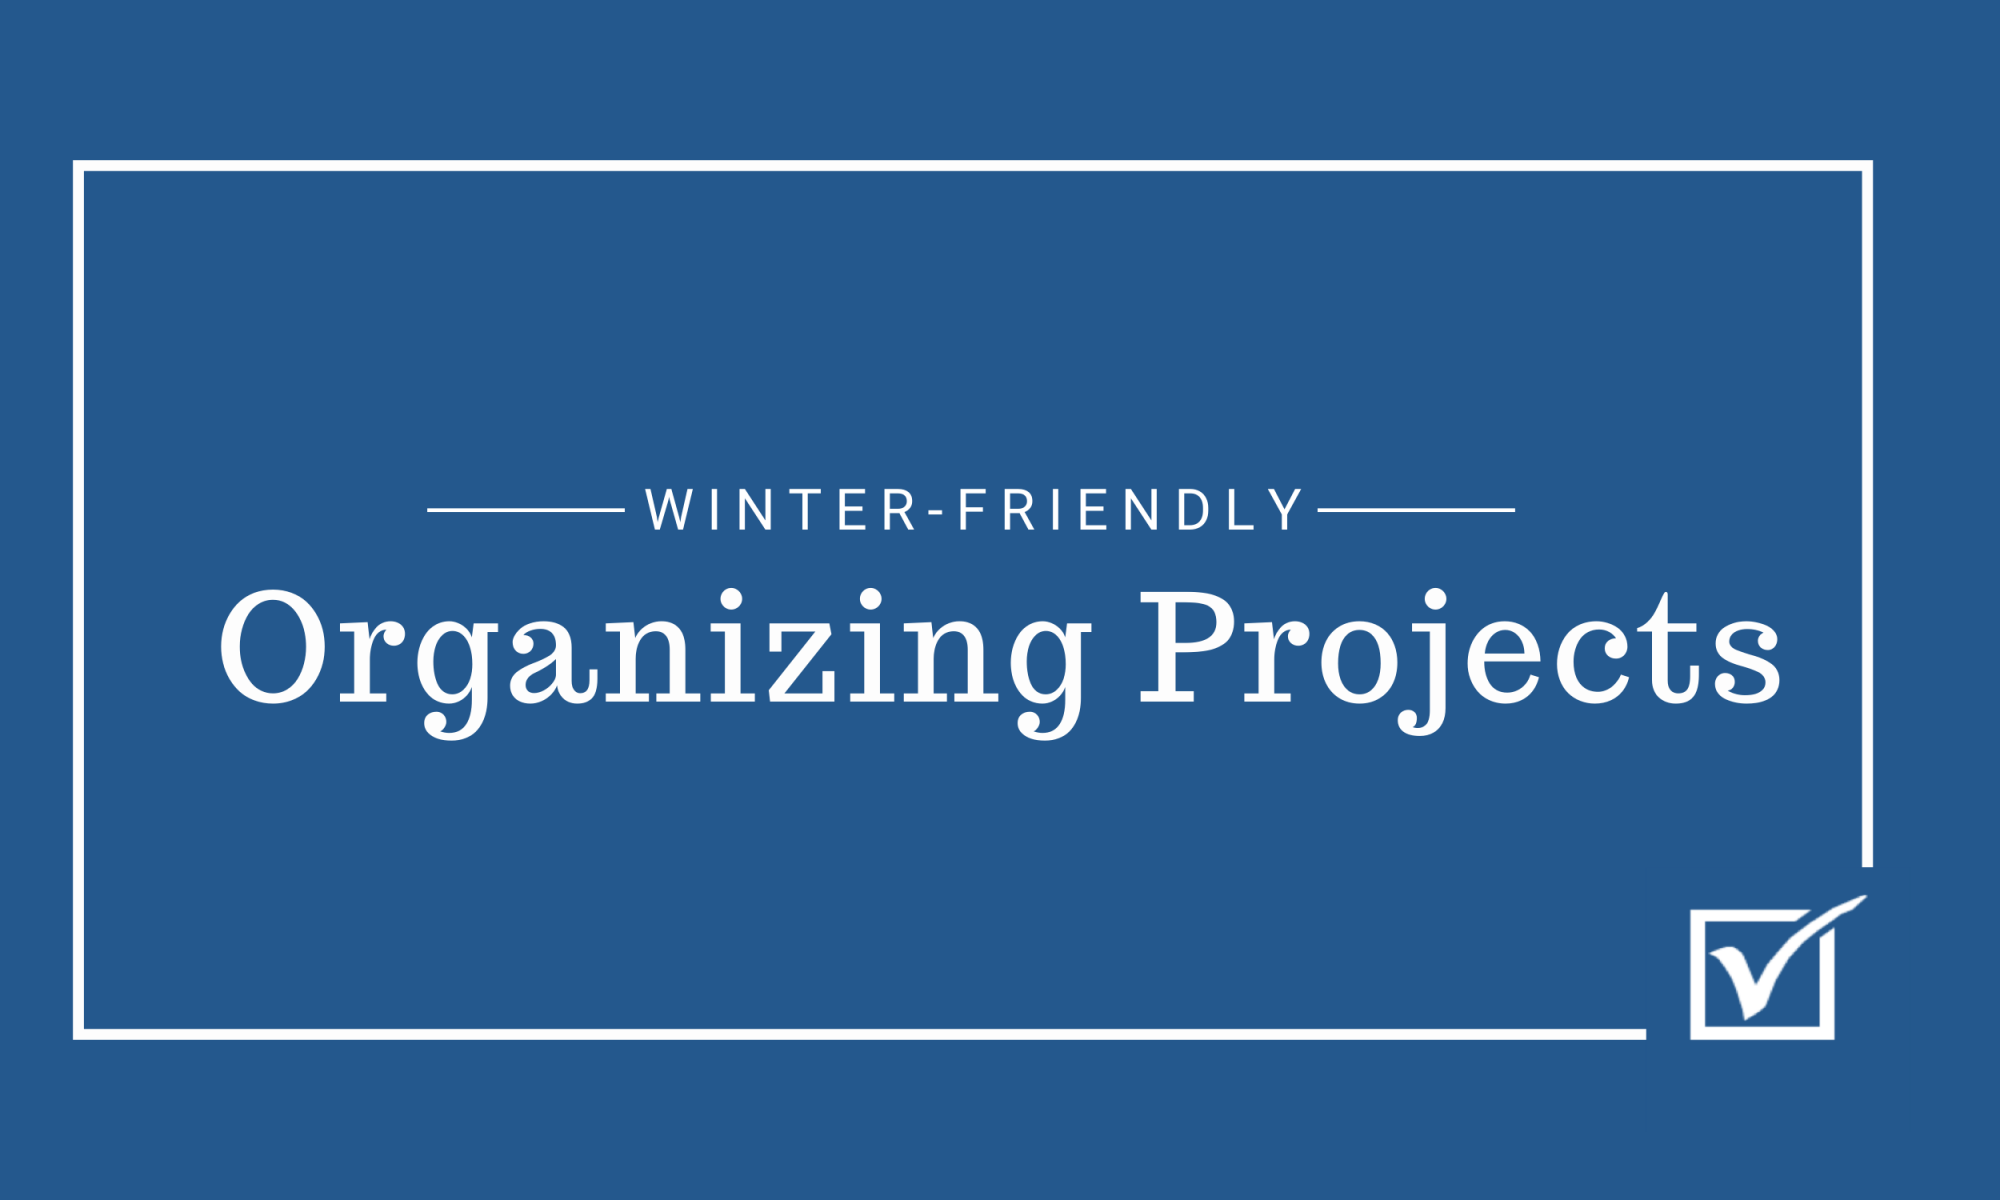 Winter Friendly Organizing Projects